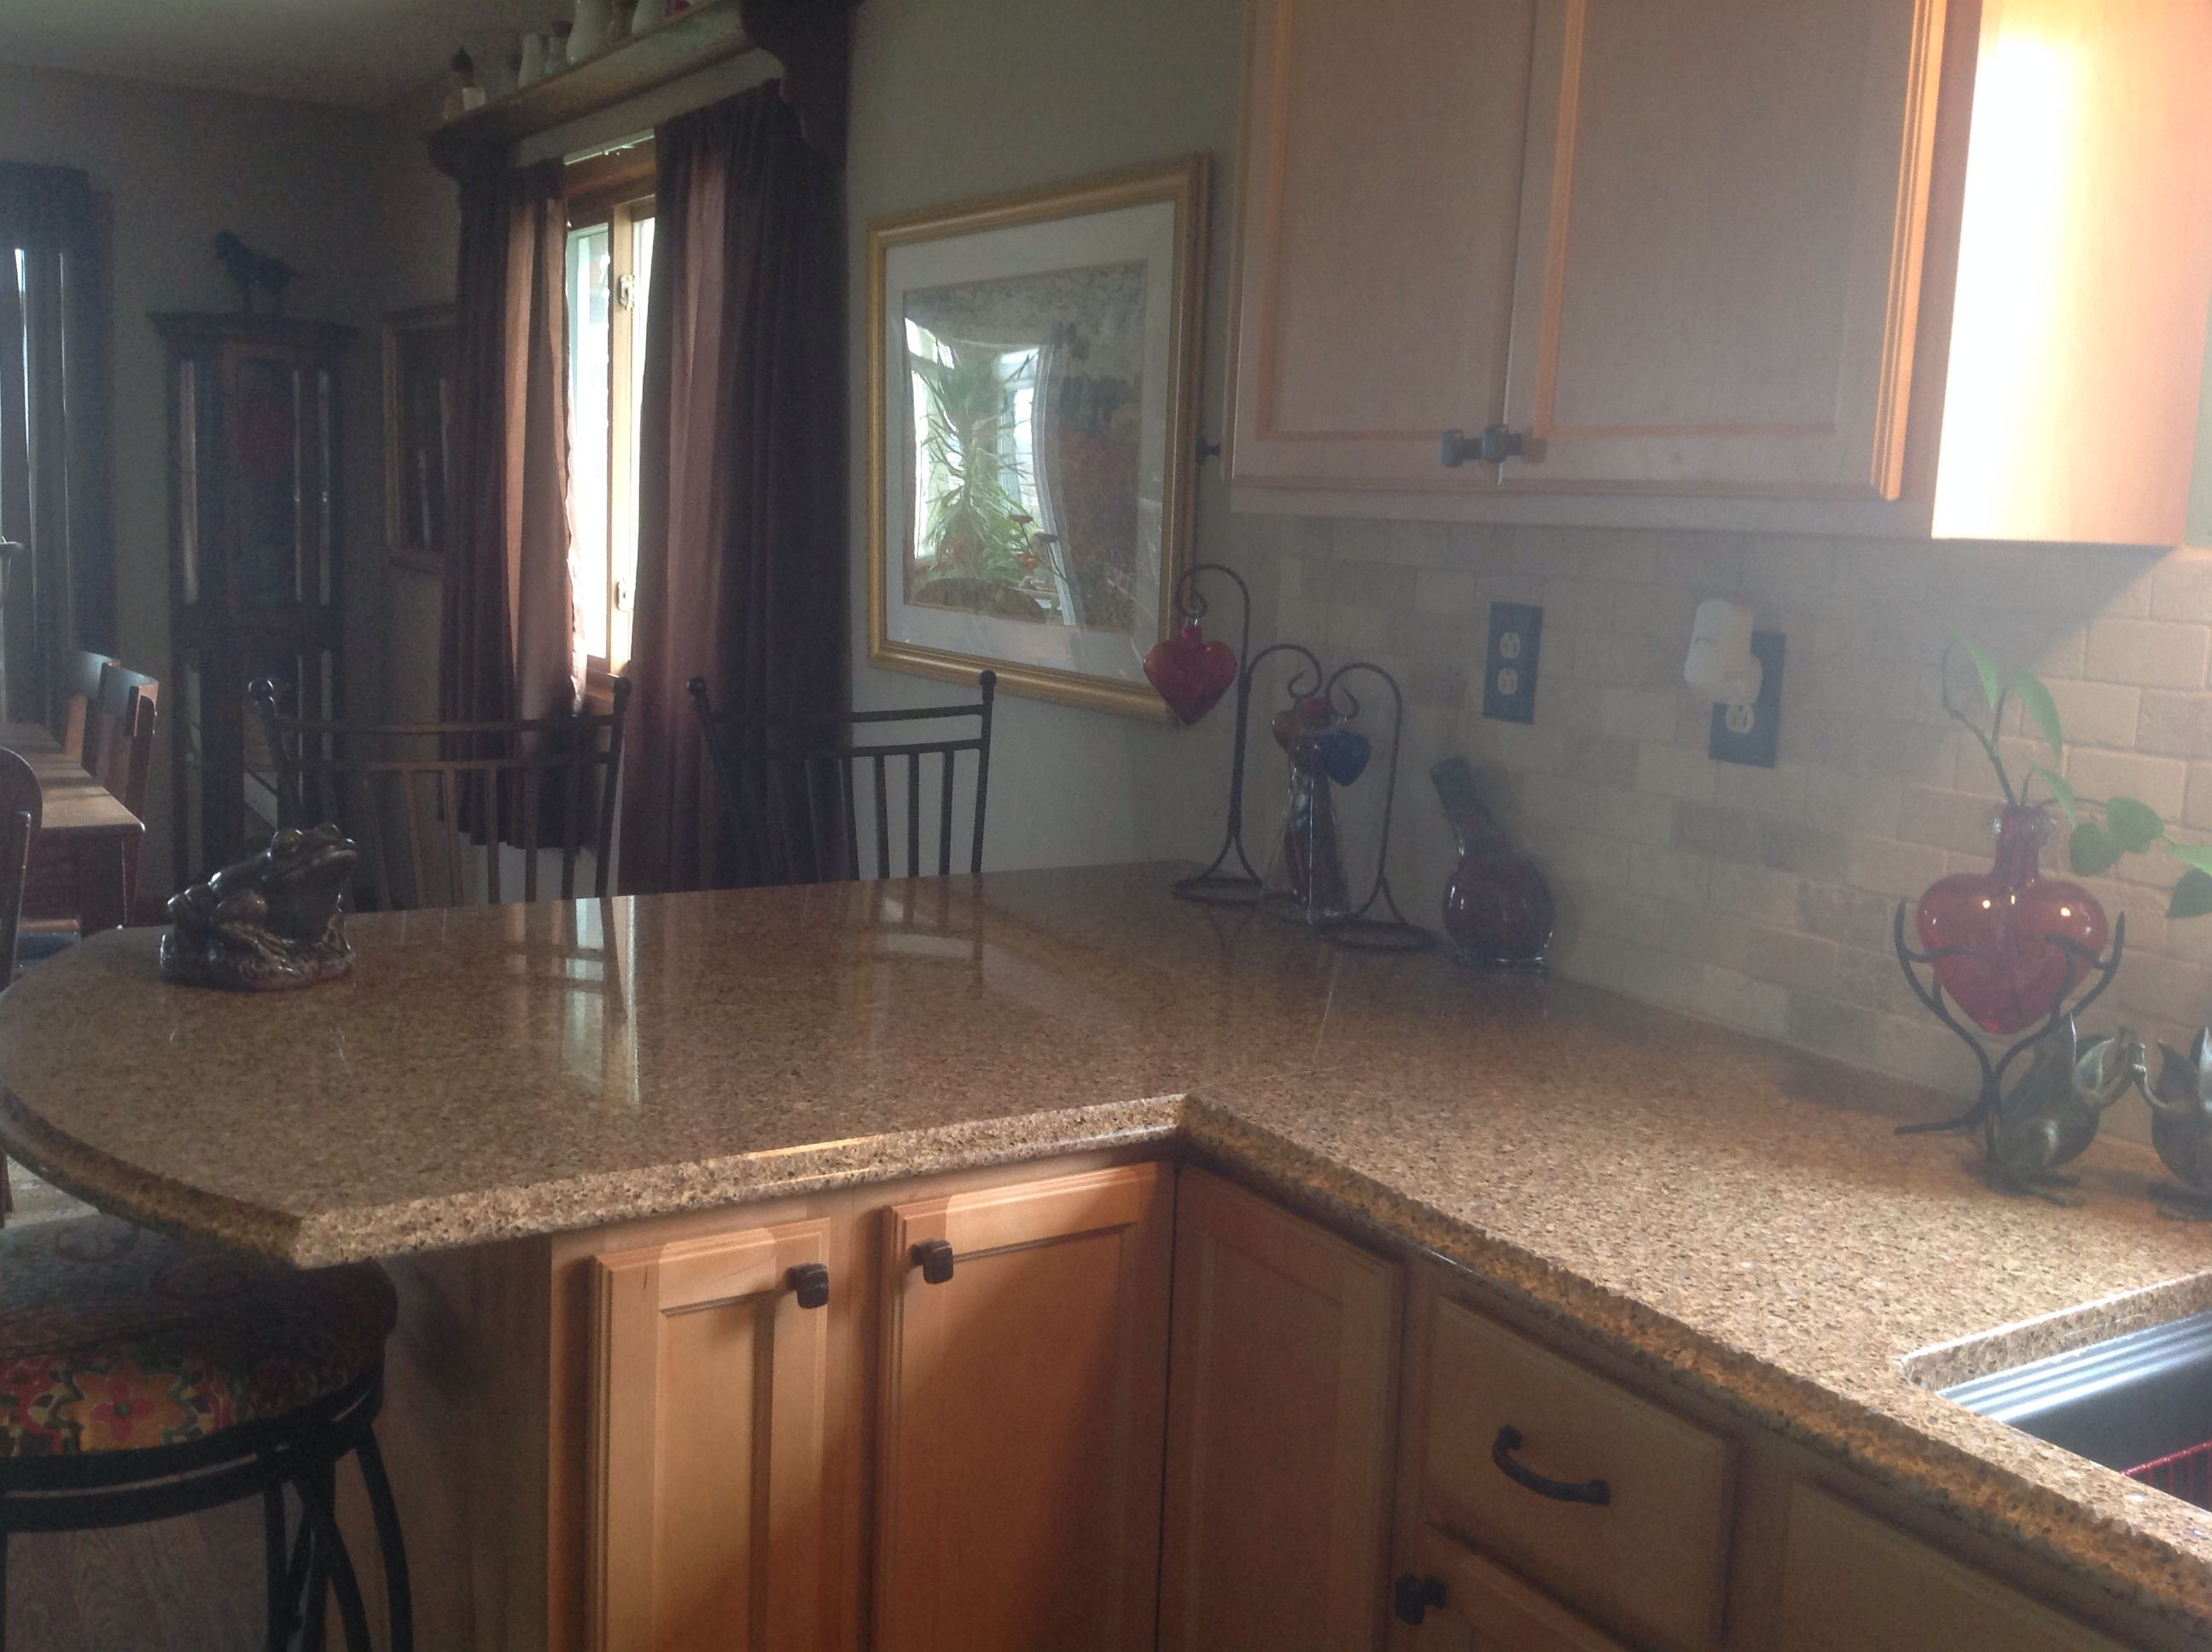 Taking Down The Old Cupboards And Partial Wall Really Opened Up The Space Love It Kitchen Remodel Cupboard Kitchen